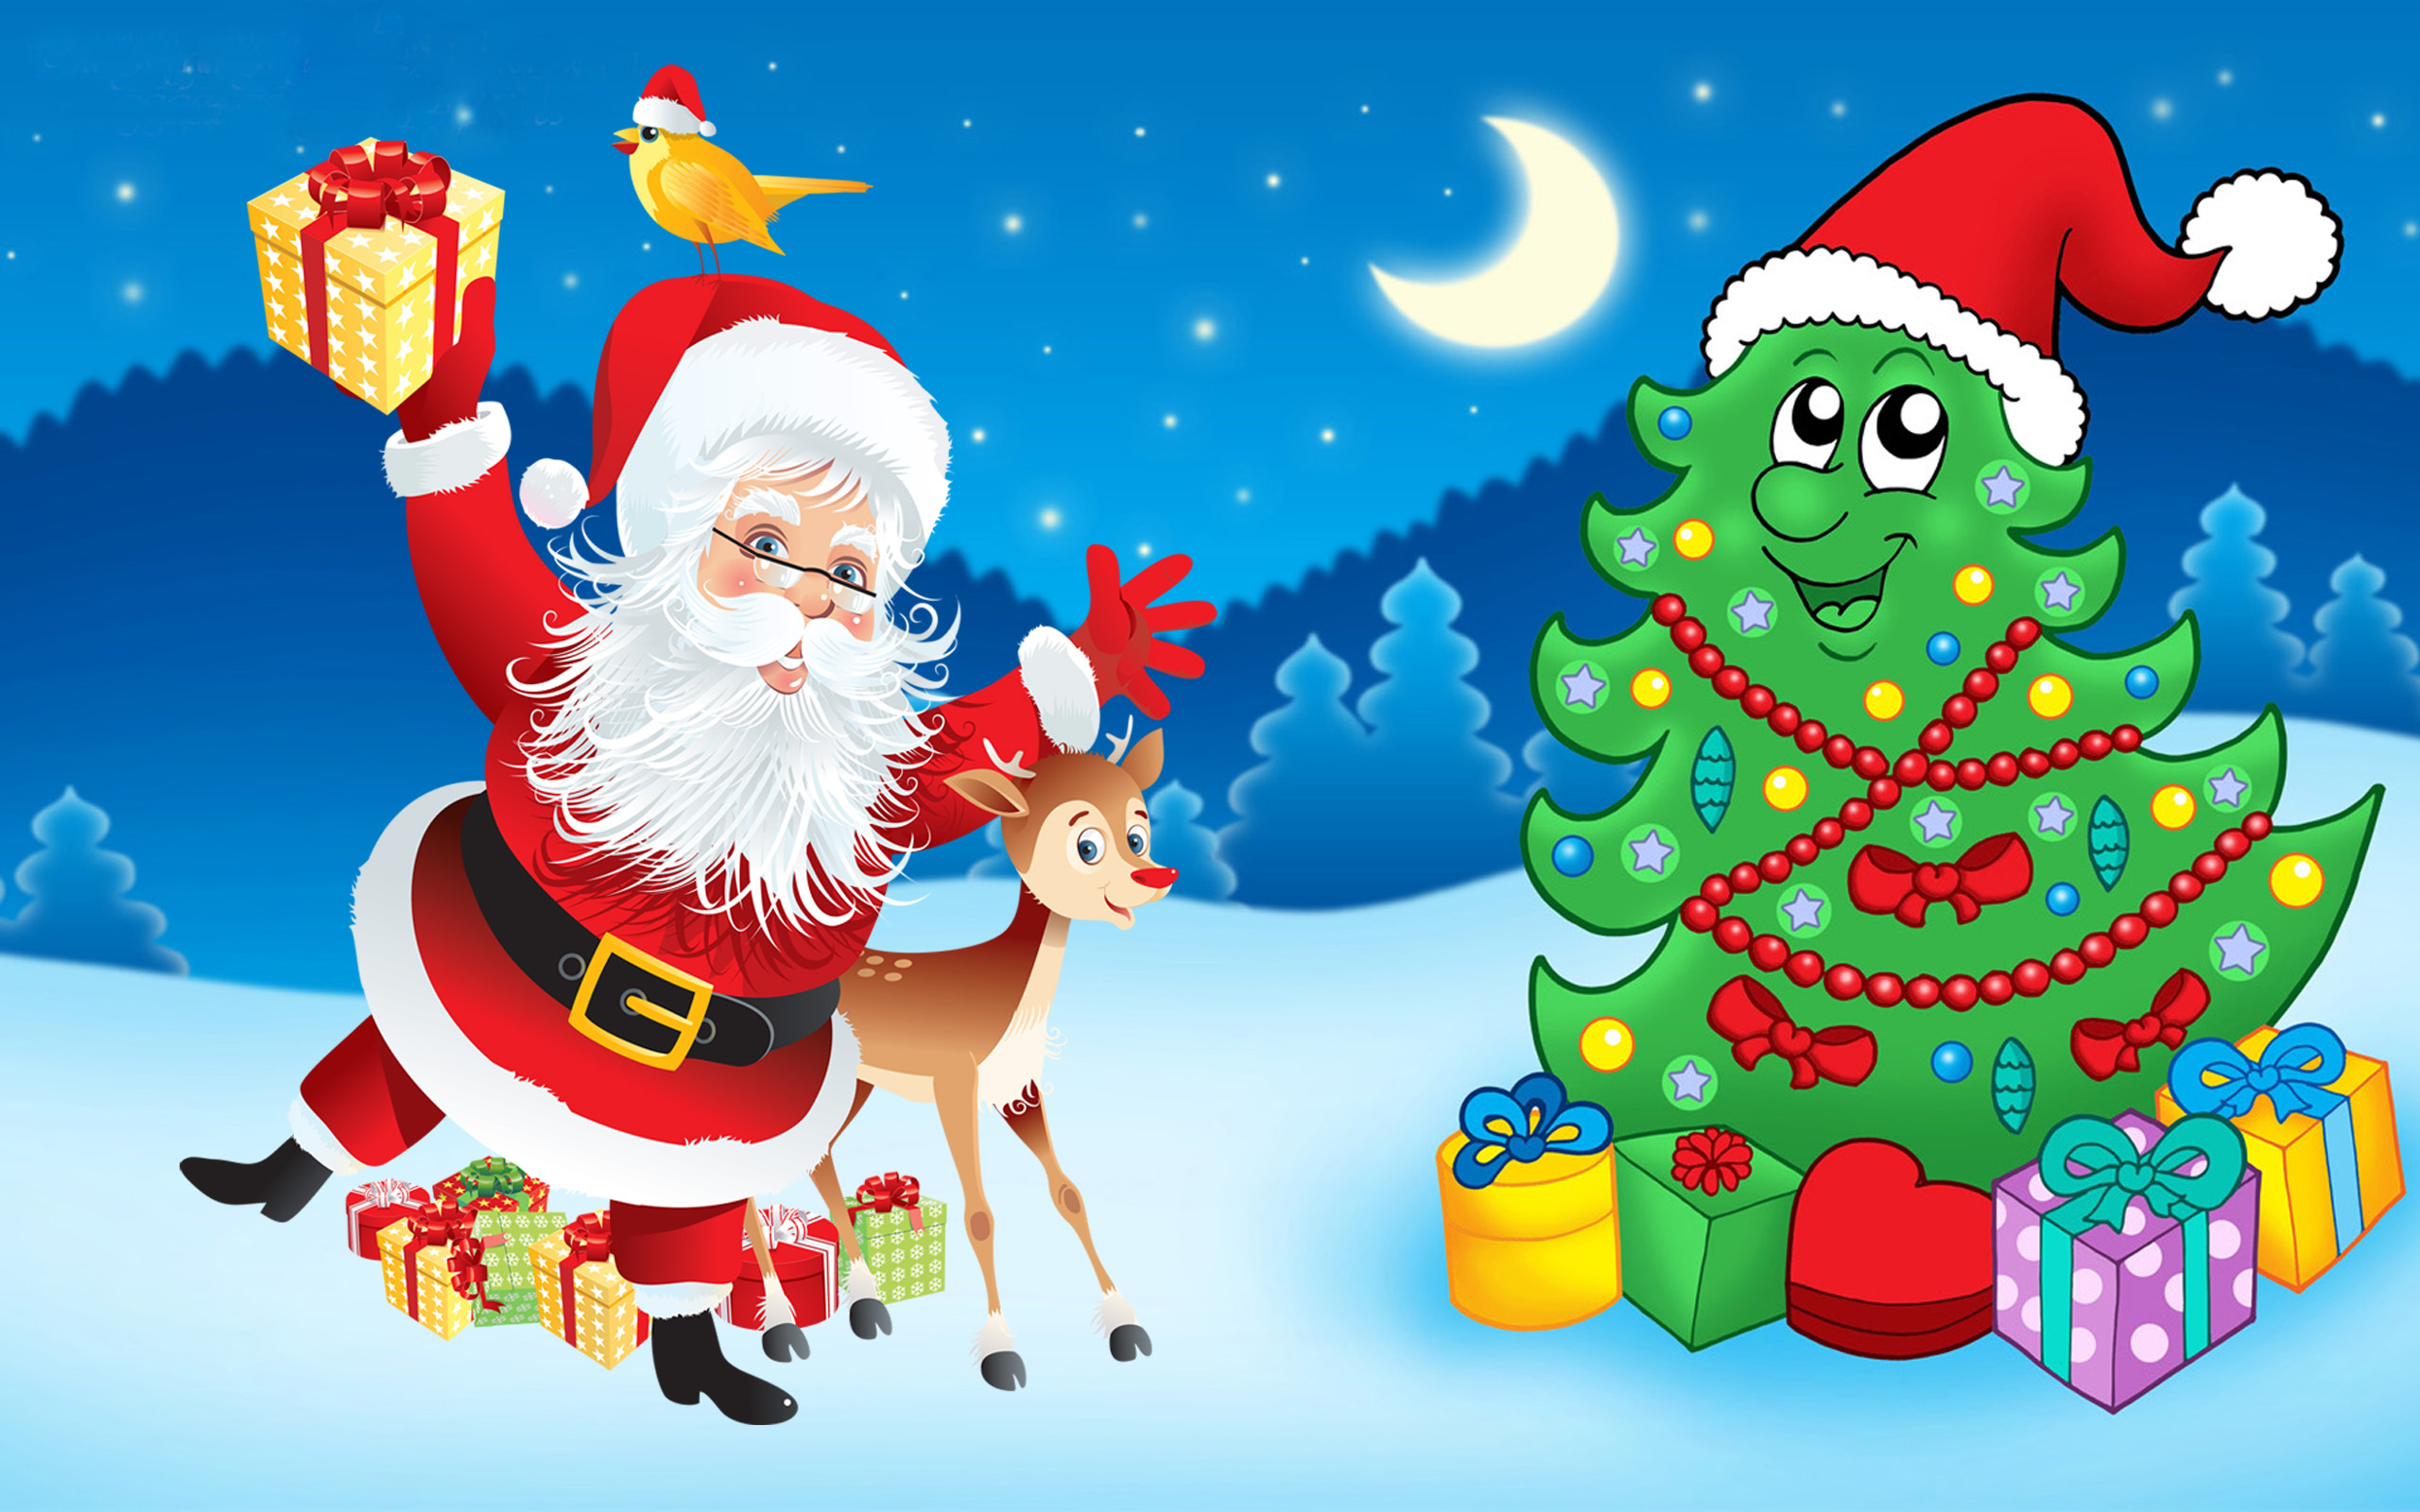 Happy Diwali Animated Wallpaper Santa Claus Christmas Tree Decorations Gifts Cartoon